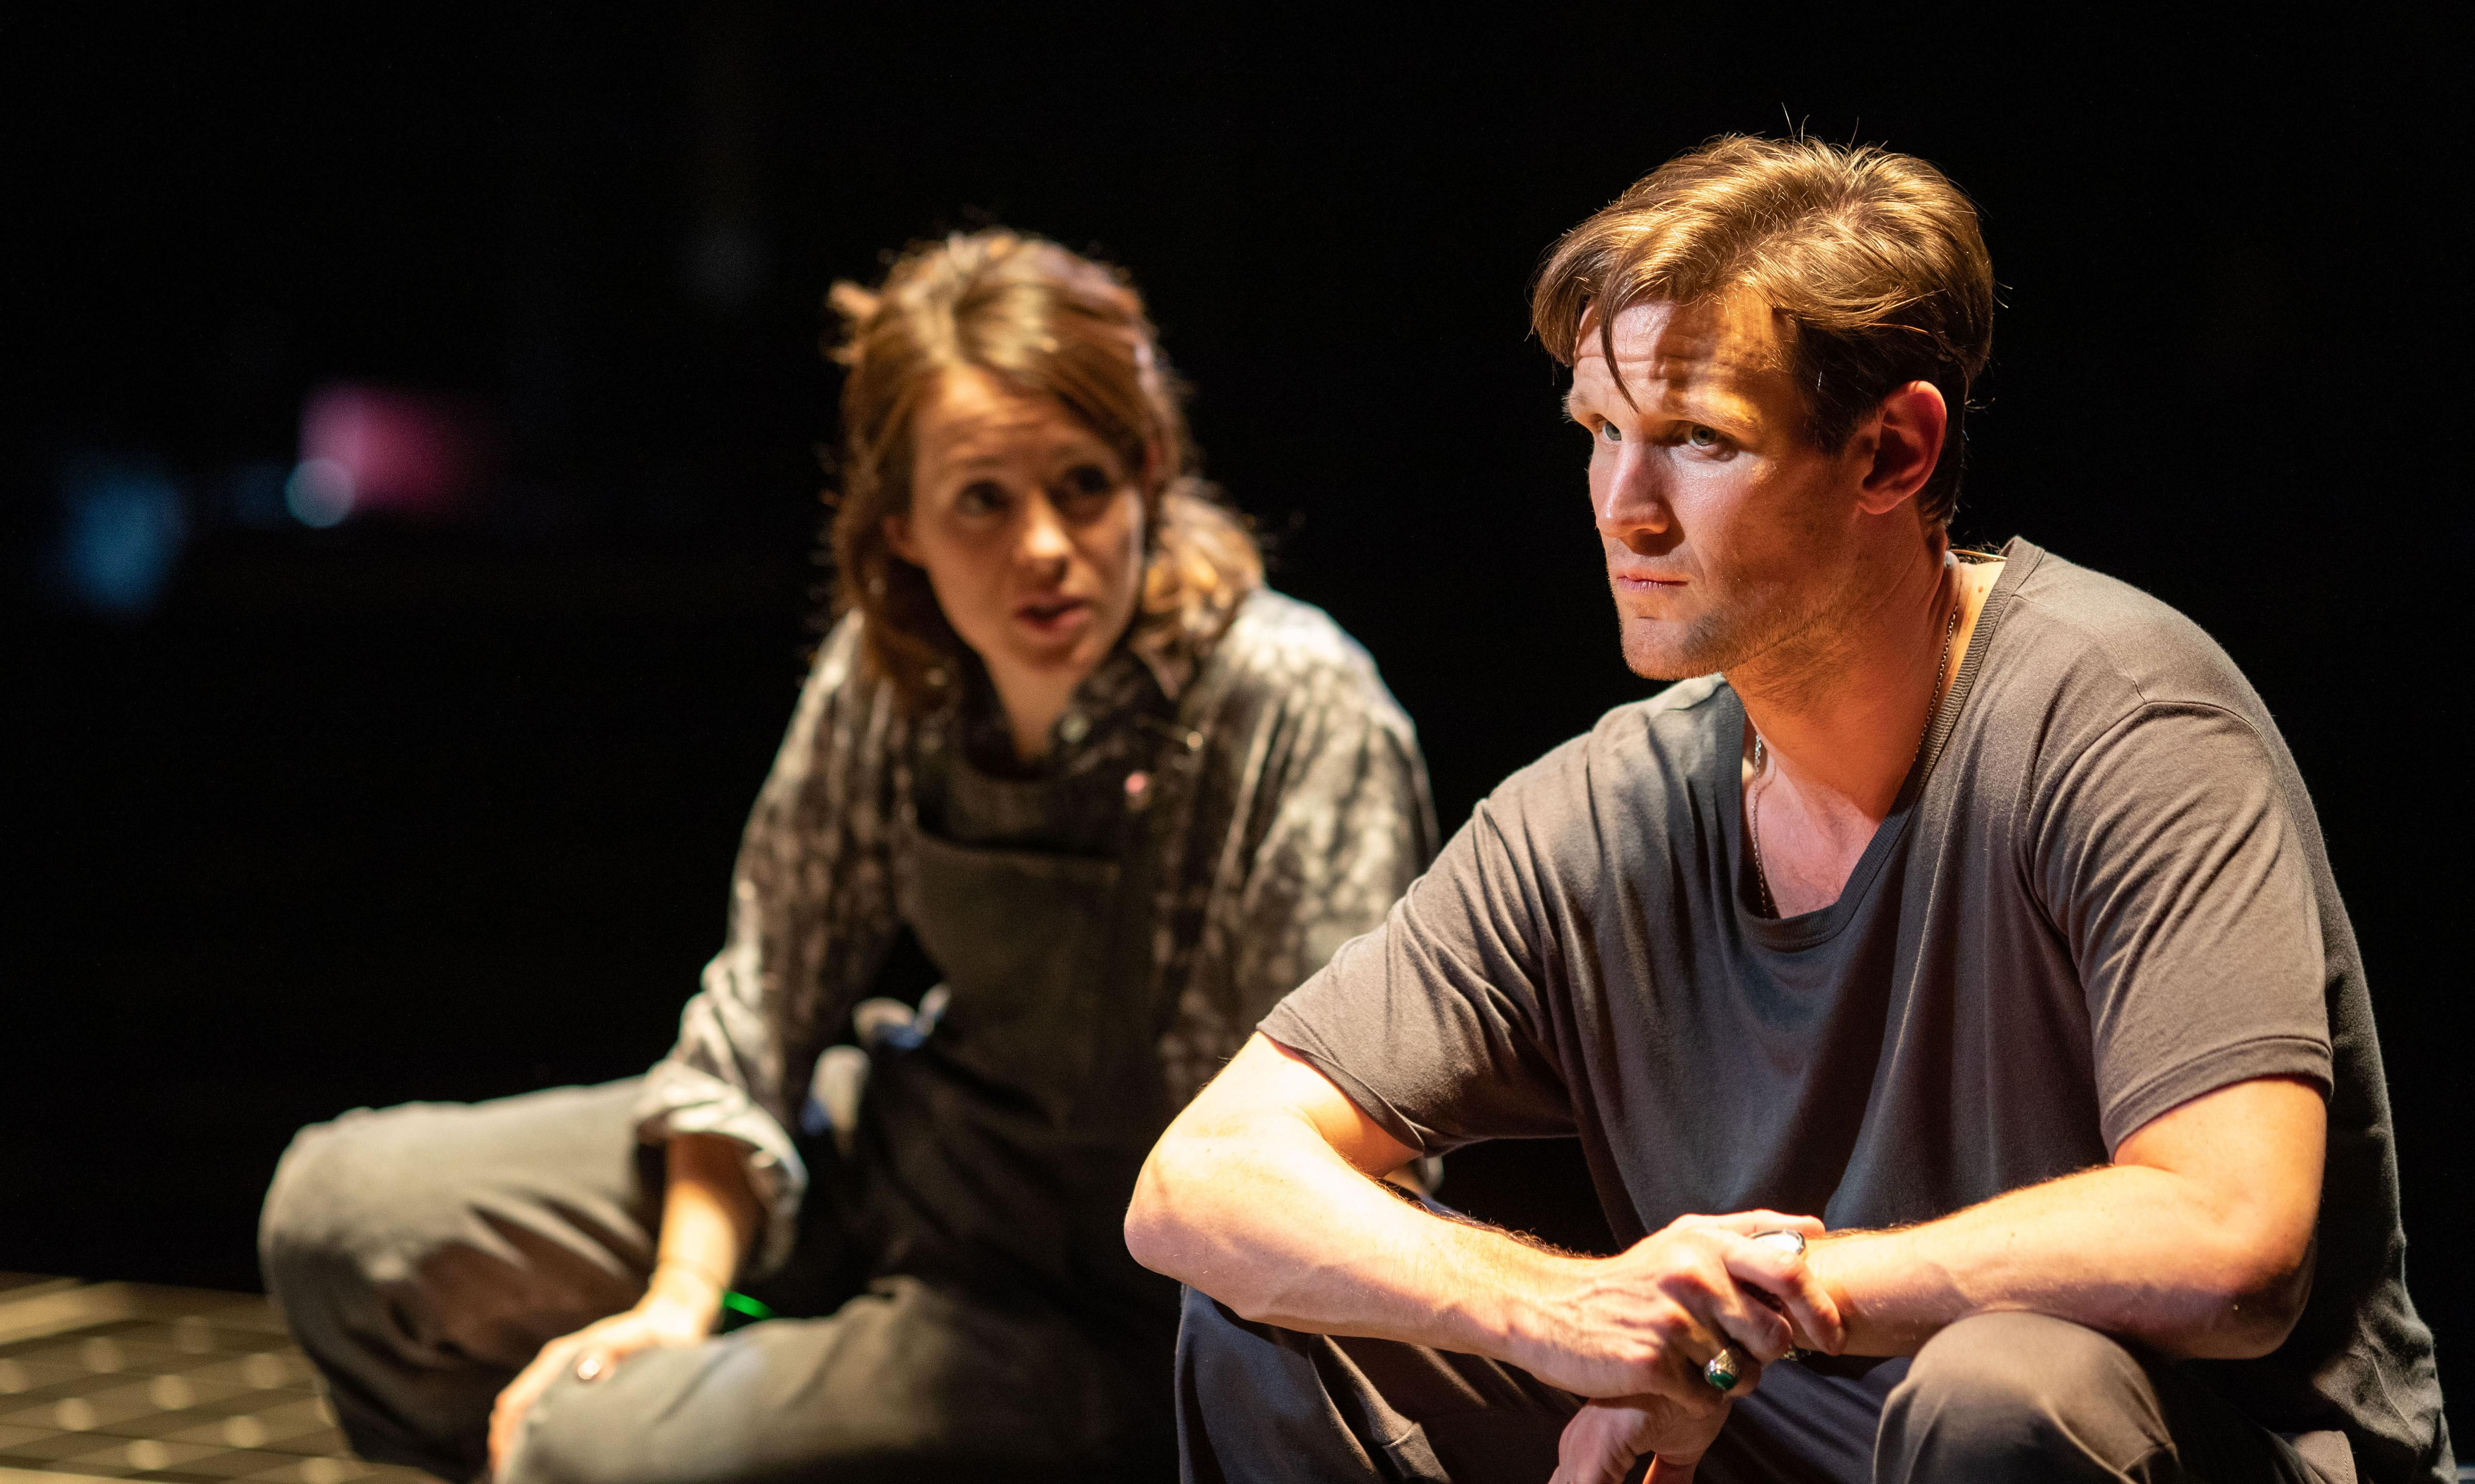 Lungs review – Claire Foy and Matt Smith shine in climate crisis drama